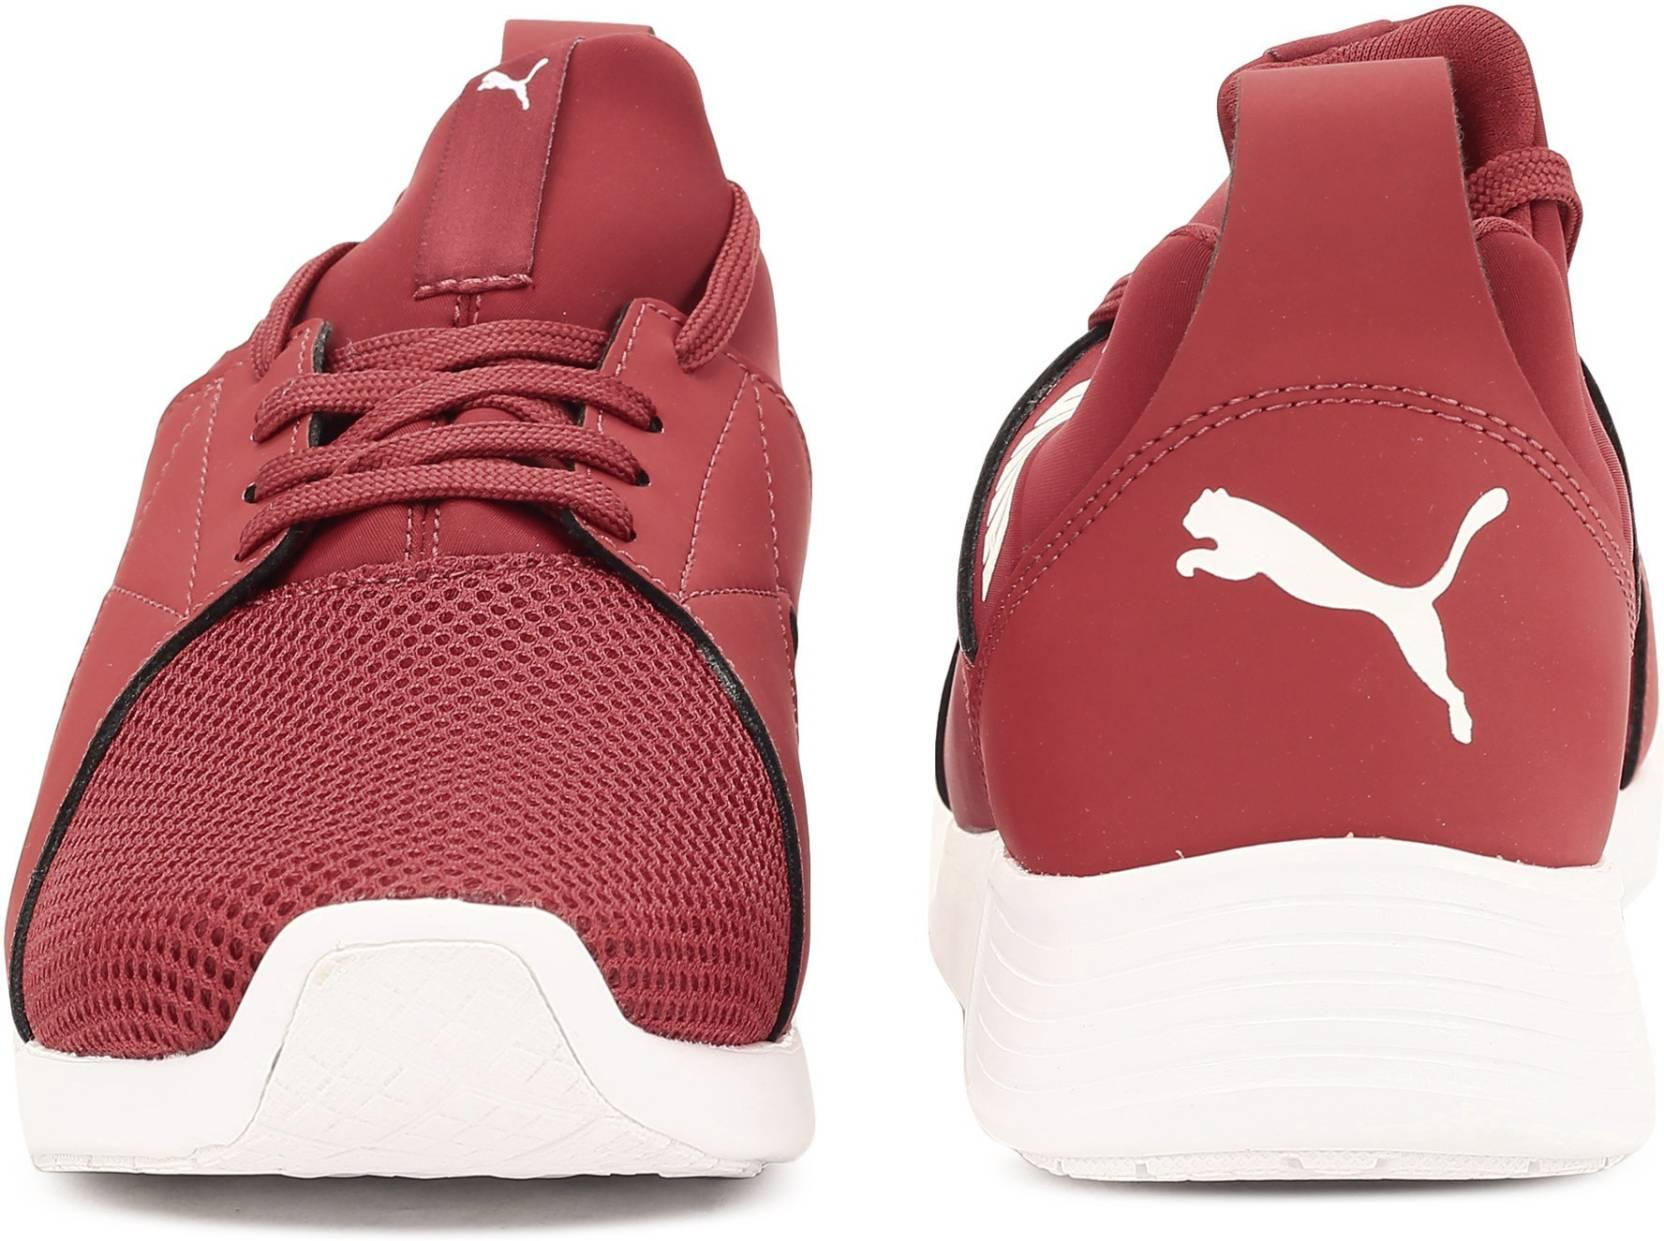 Puma Shoes Price List in India on 02